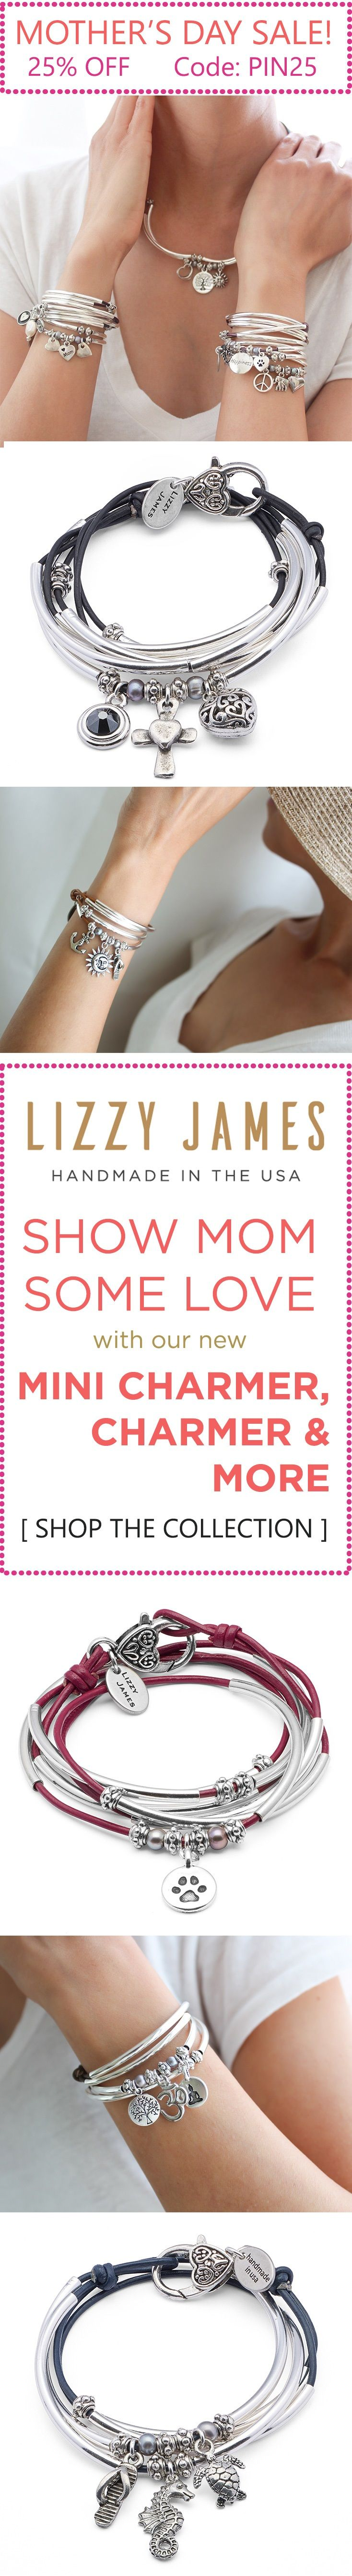 Lizzy James NEW Arrivals plus online exclusives just in time for Mother's Day! Get 25% OFF with CODE: PIN25 plus Free Shipping during our Mother's Day Sale. With great Mothers Day gift ideas featuring NEW charm bracelet wrap bracelets - Mini Charmer, Char